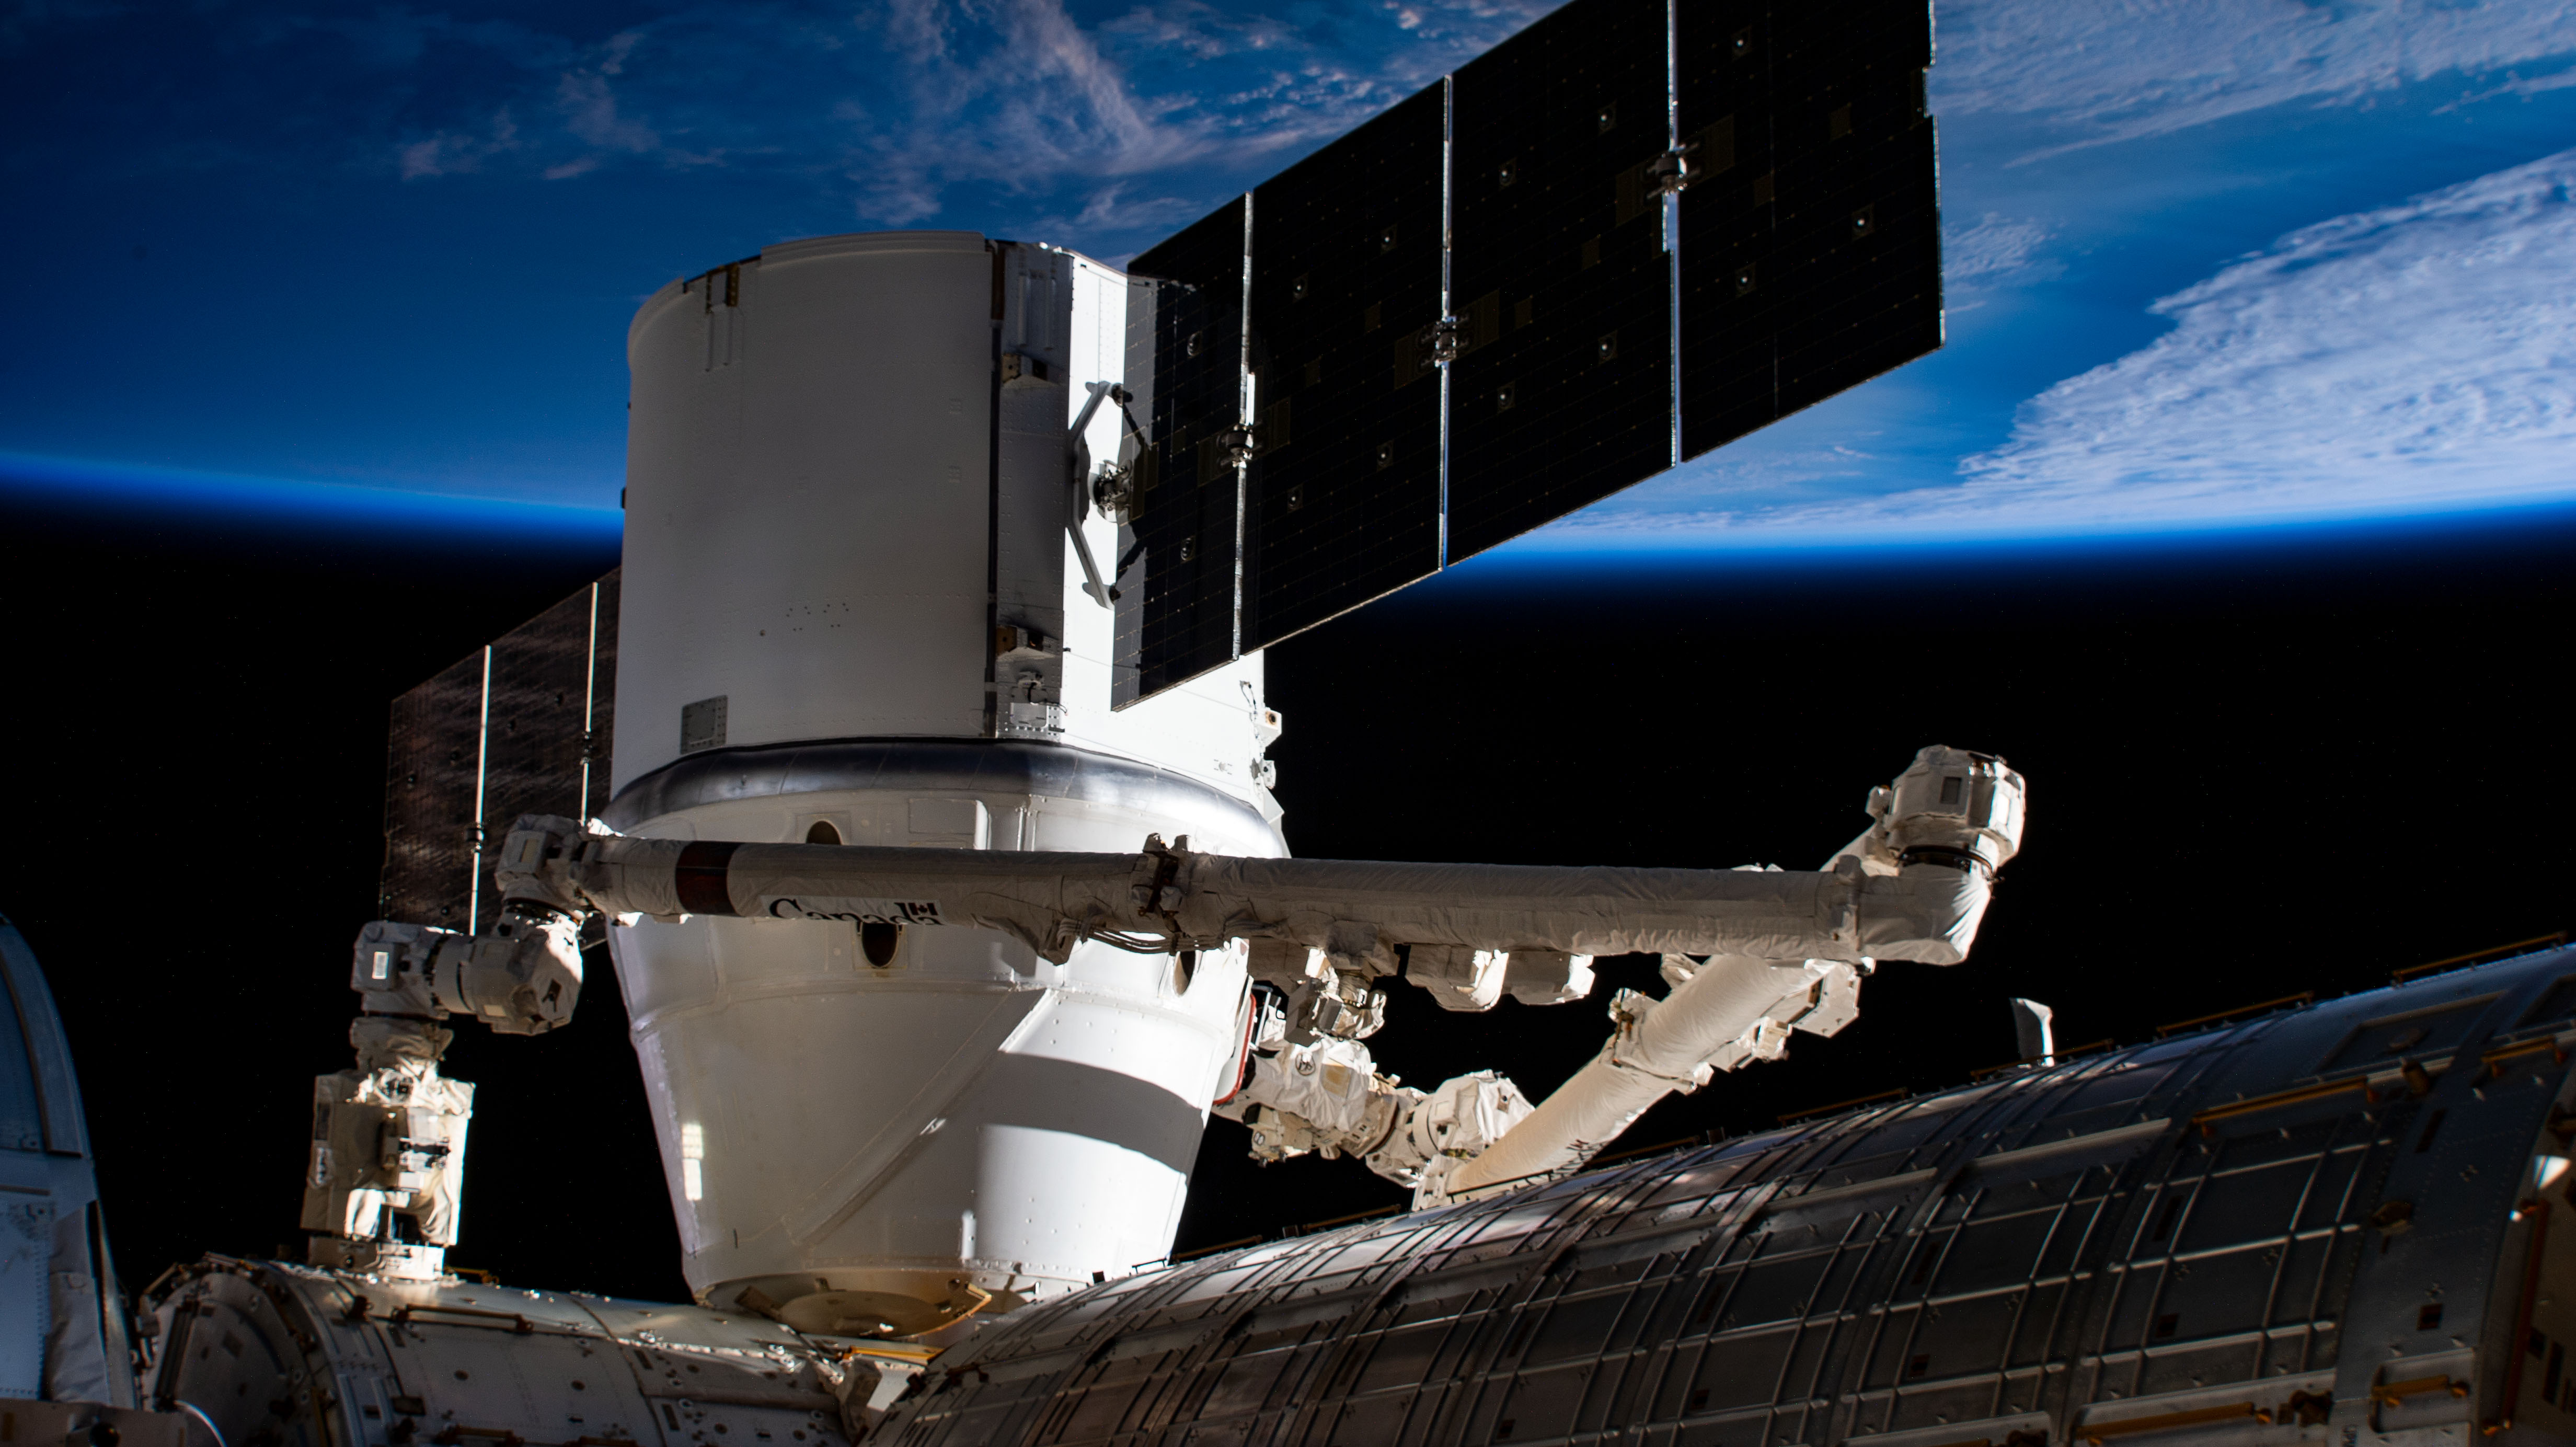 The SpaceX Dragon resupply ship berthed to the Harmony